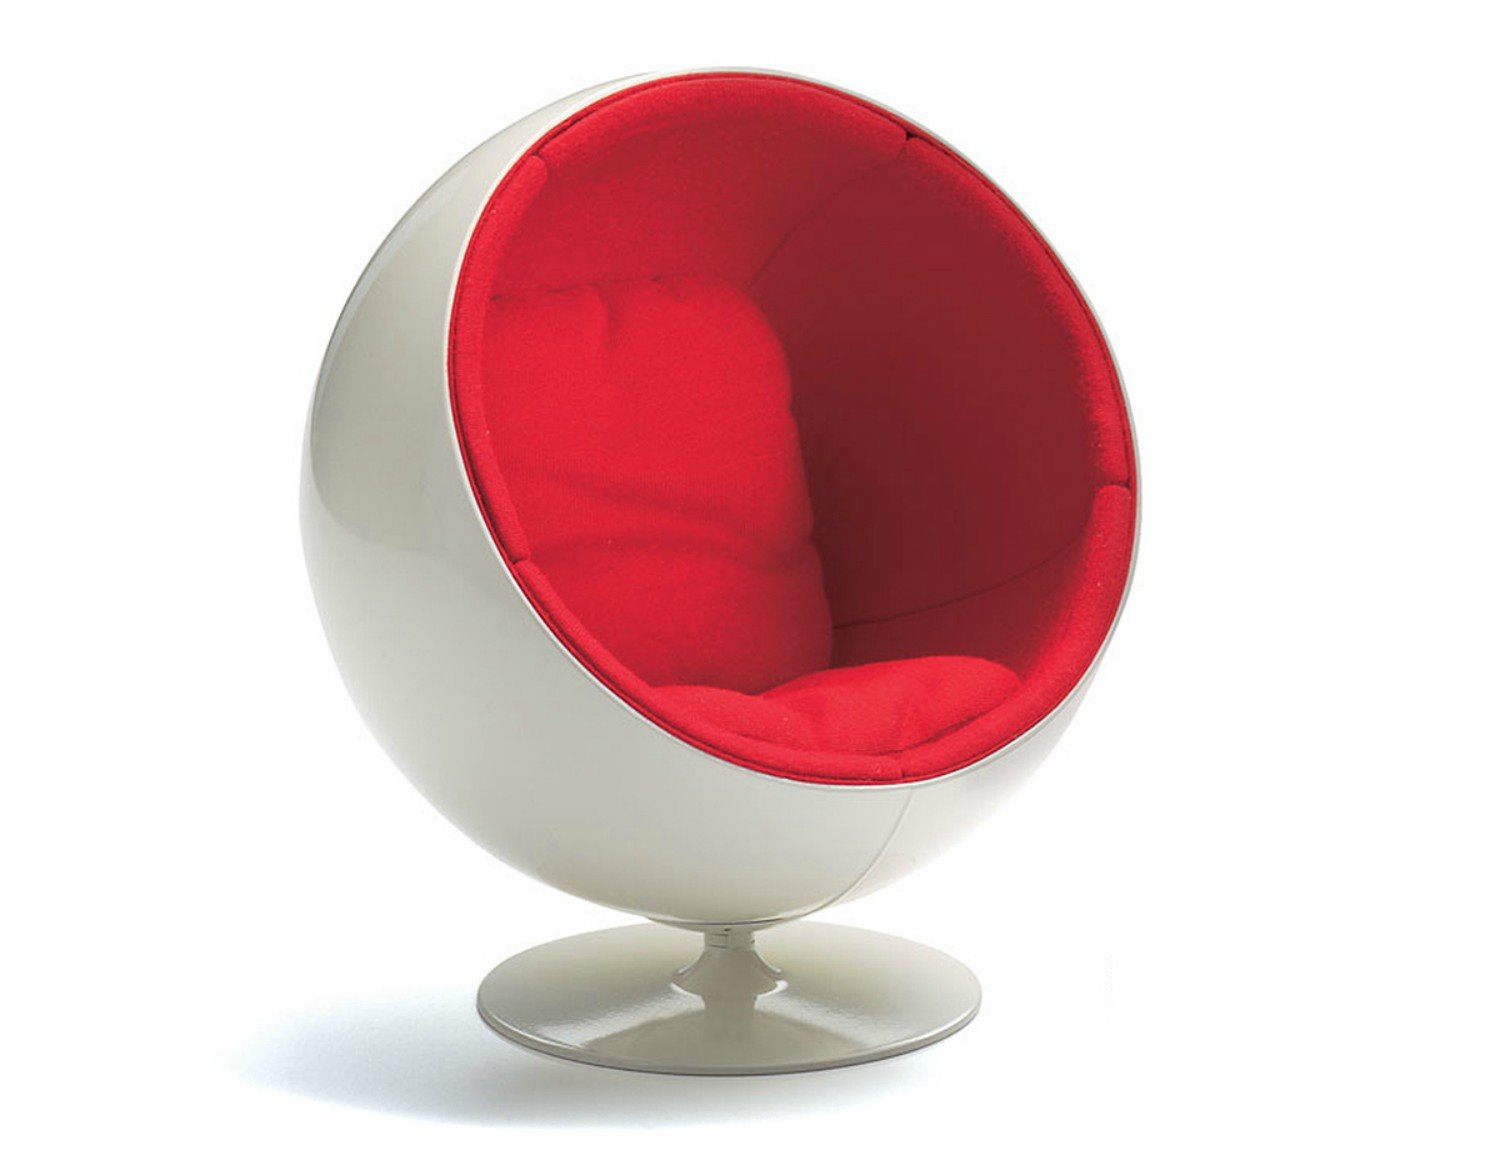 ball-chair-eero-aarnio-vitra-1. [1] Ball Chair de Eero Aarnio